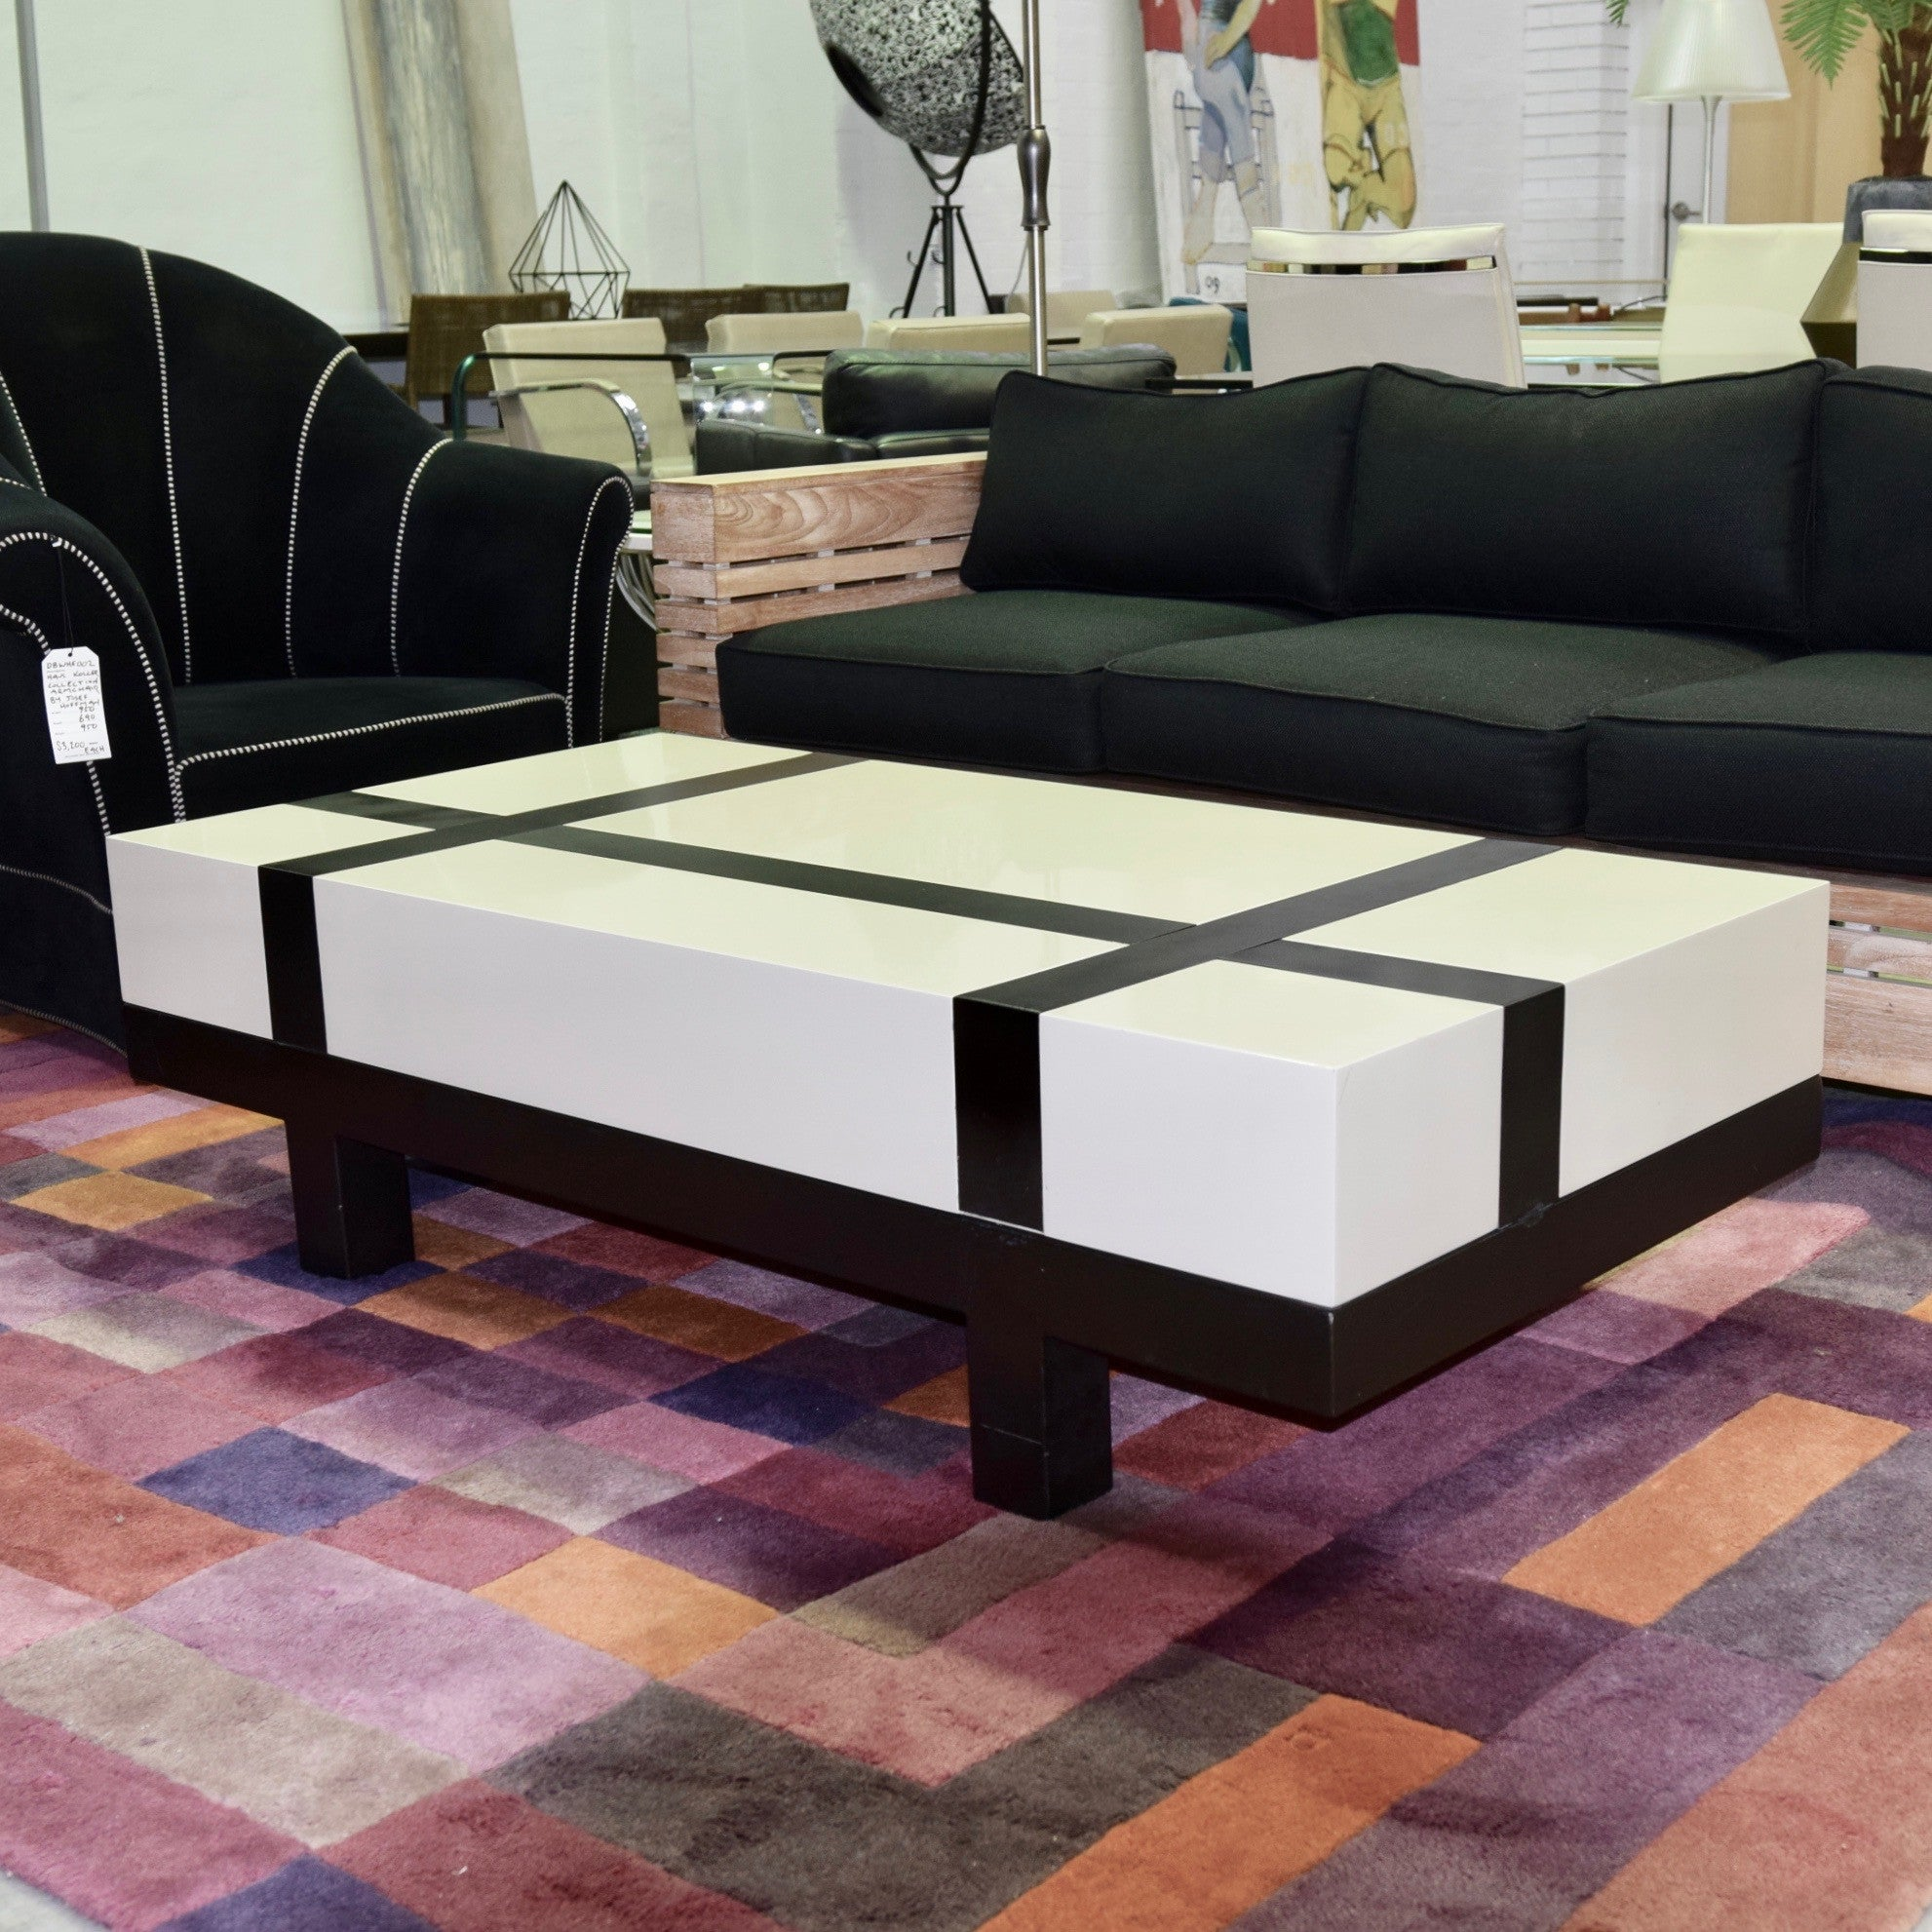 Banded Block Coffee Table through Coco Republic